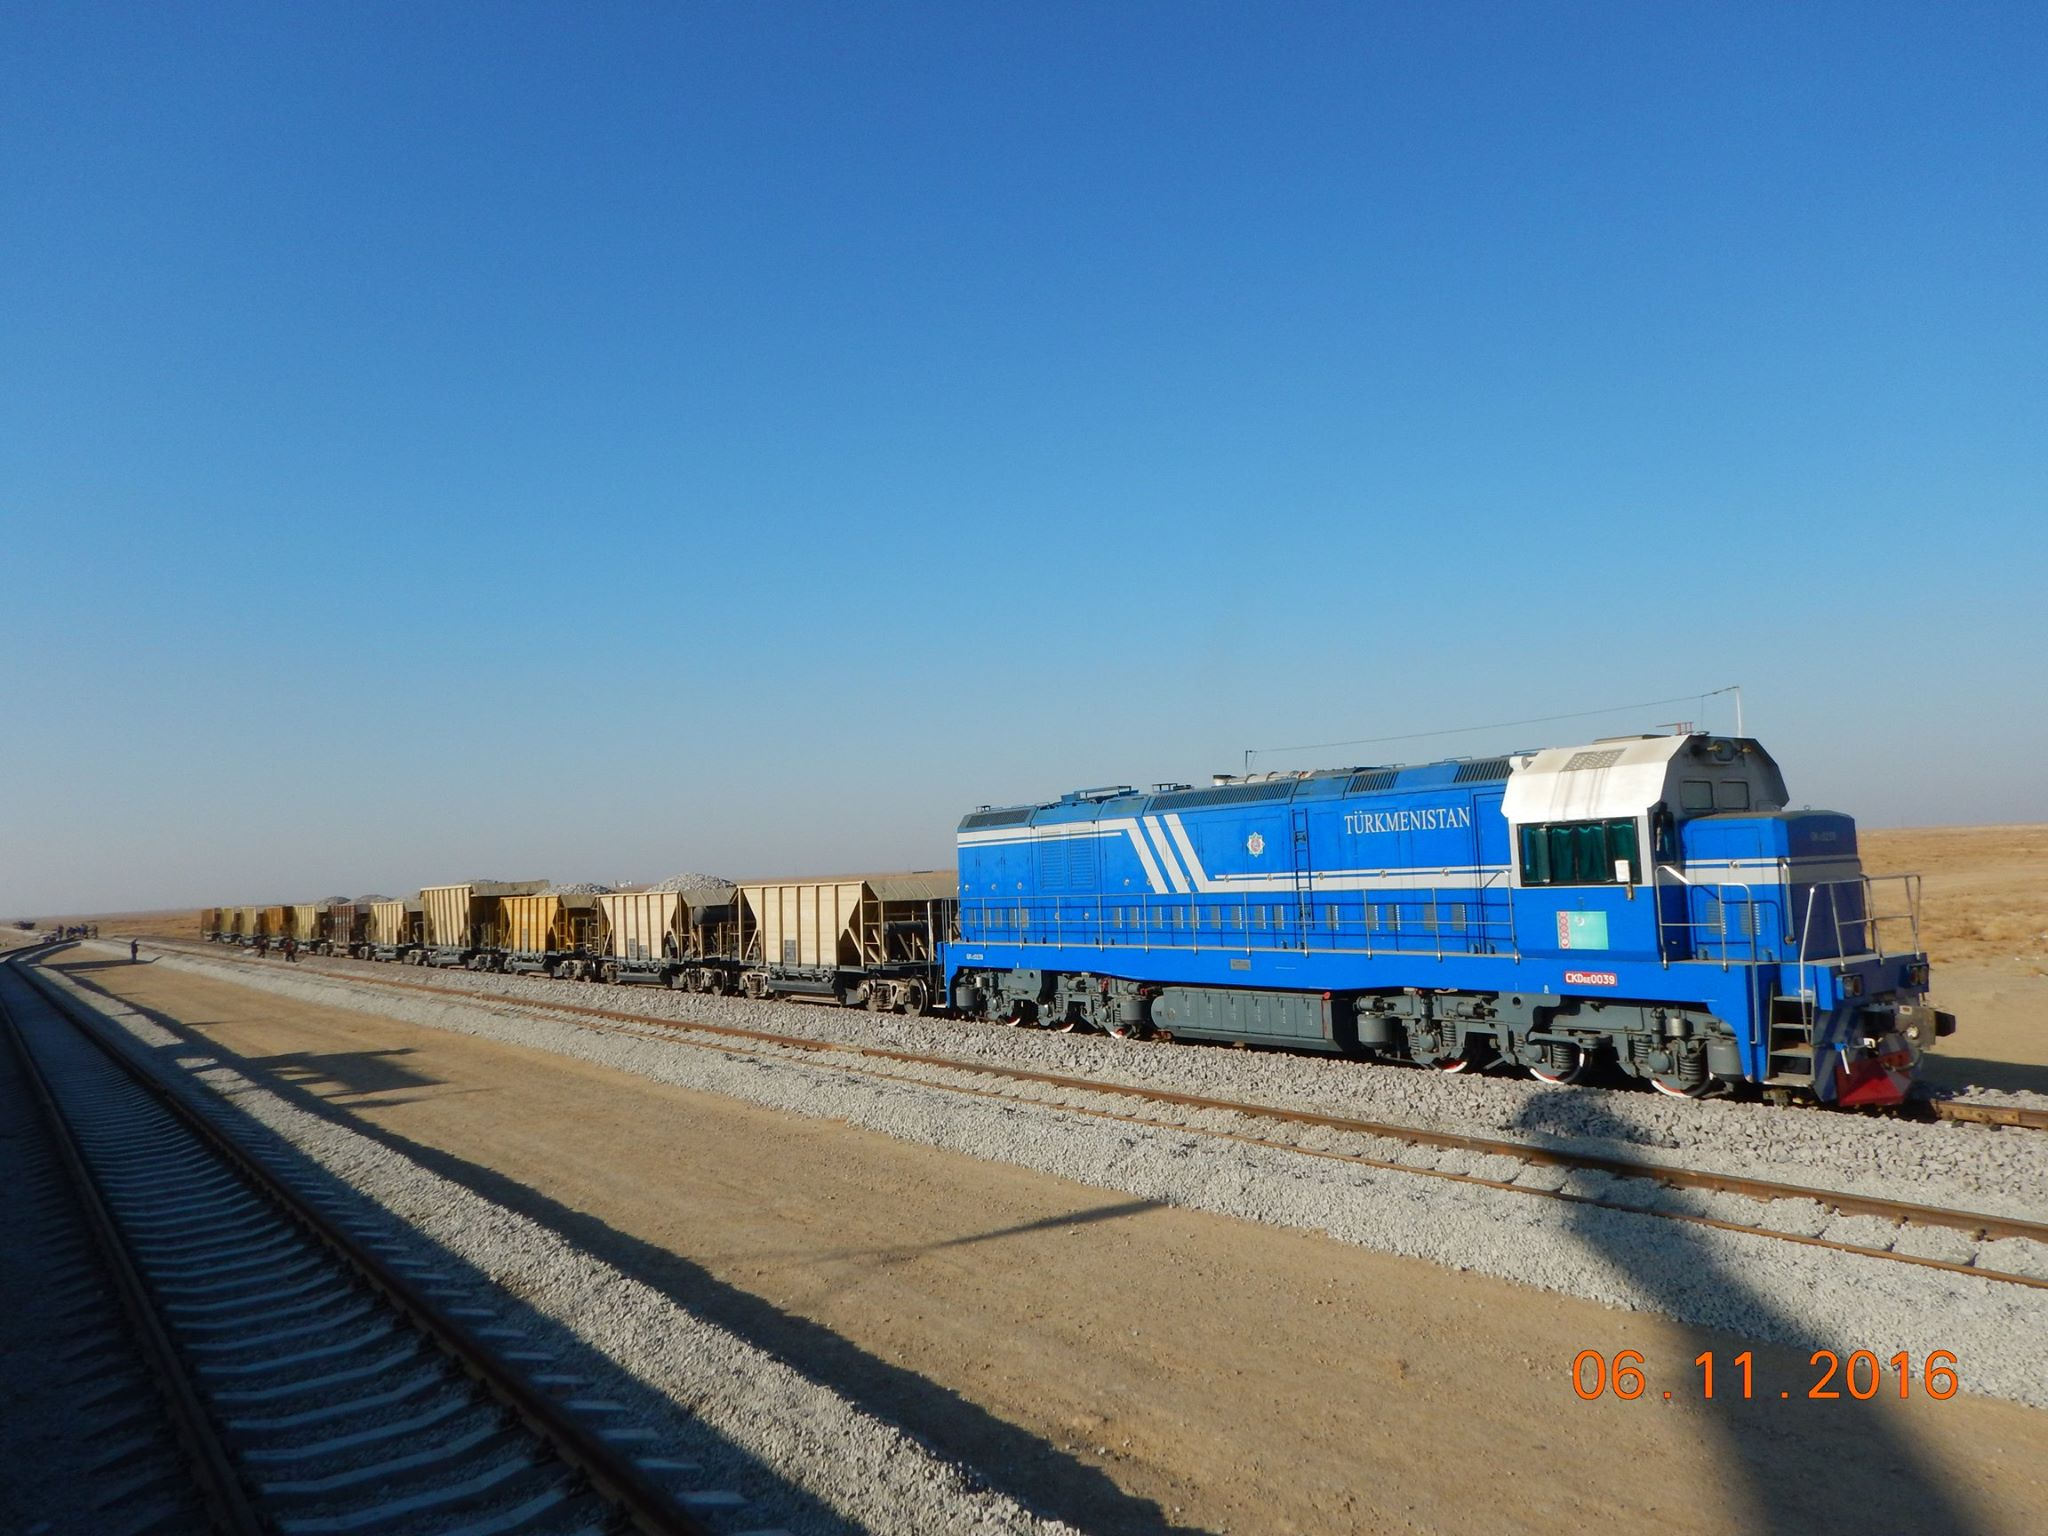 Turkmenistan to Aqina railway